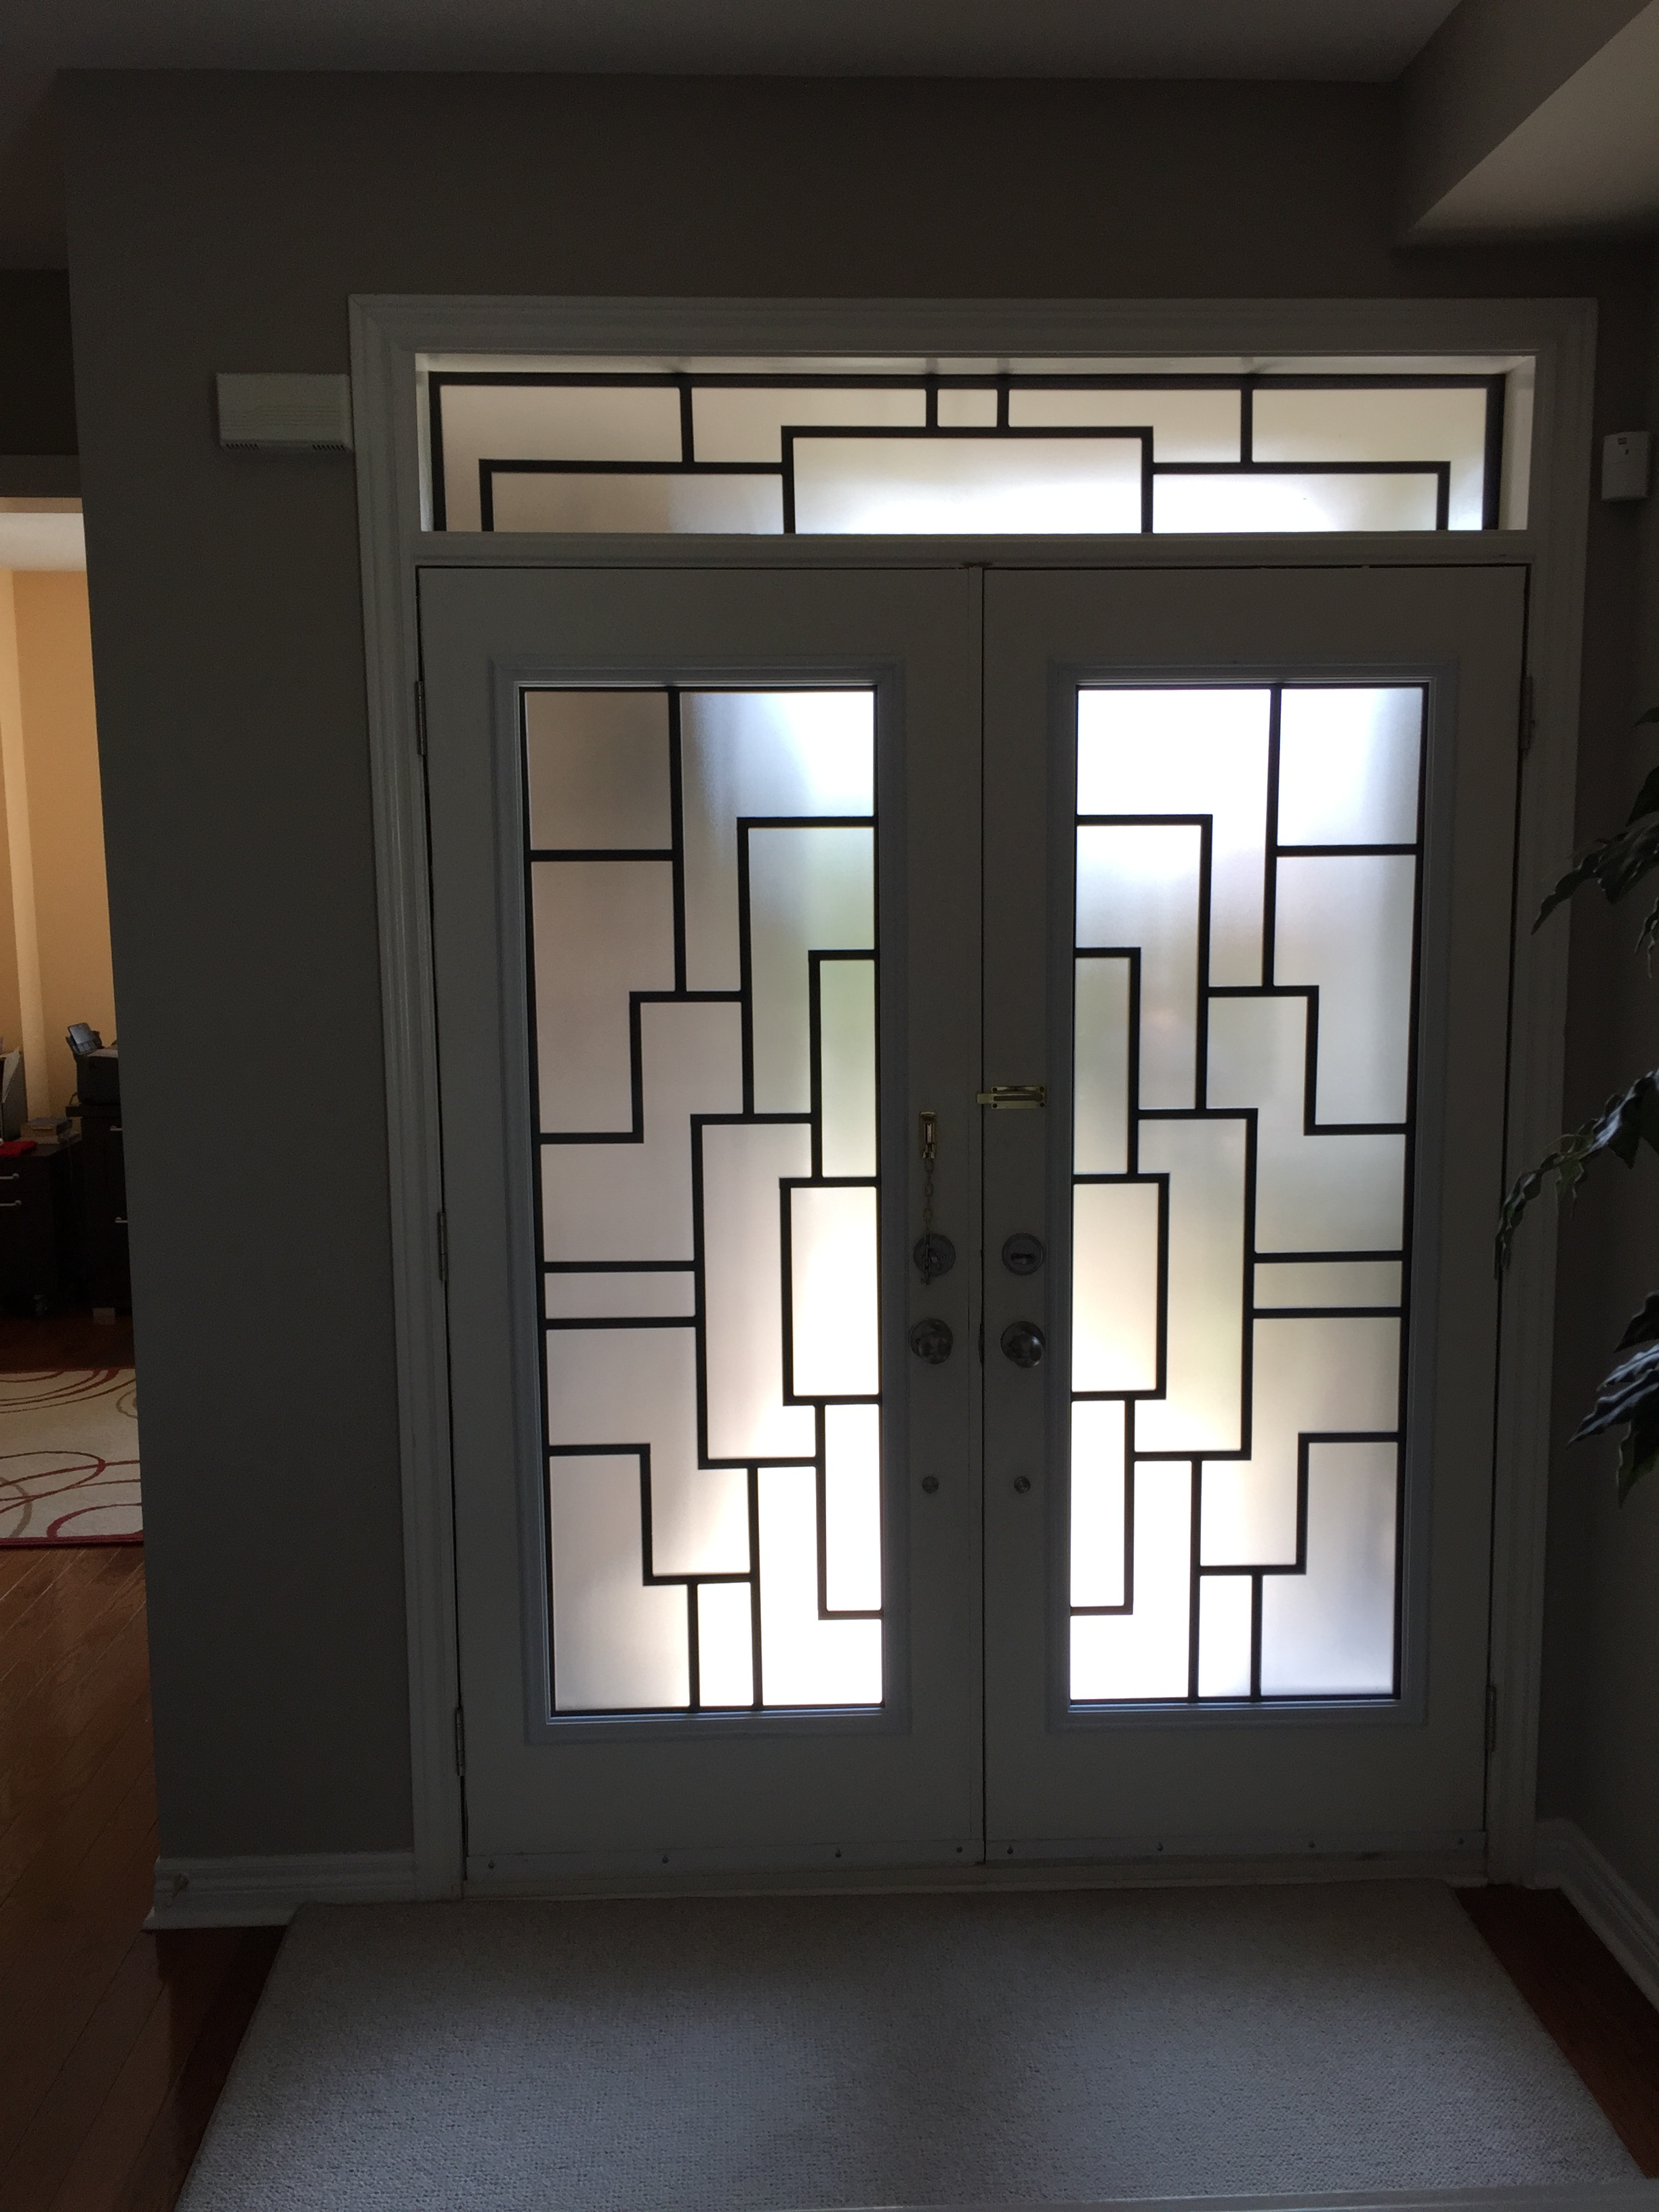 Malibu-Wrrought-Iron-Glass-Door-Inserts-Brampton-Ontario